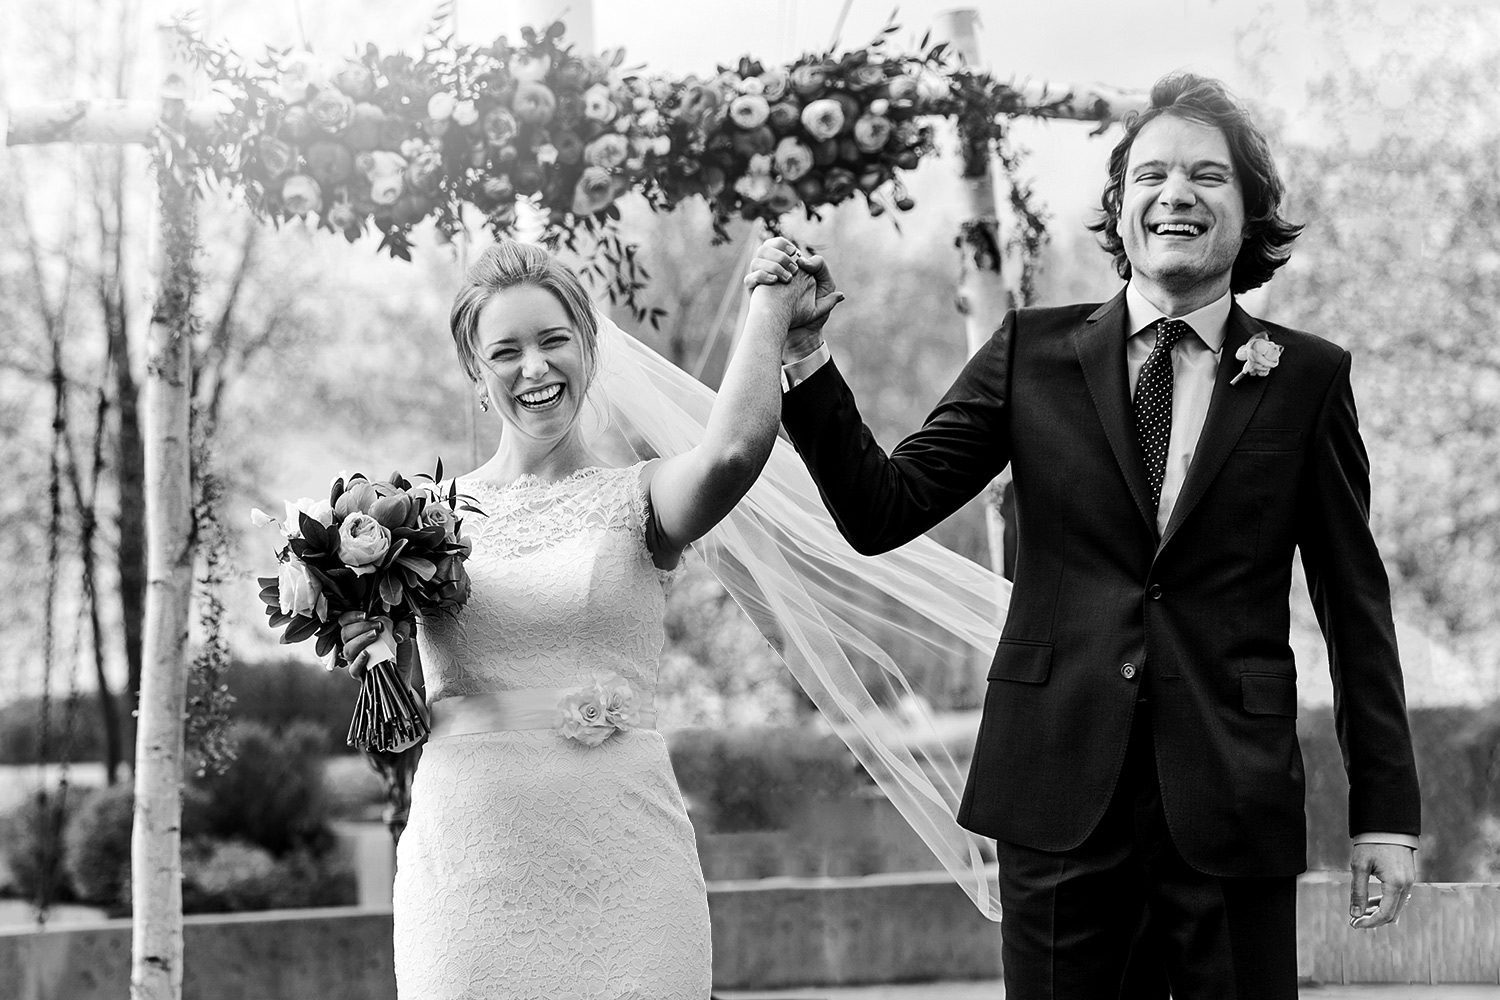 photograph of a happy bride and groom having just been pronounced husband and wife